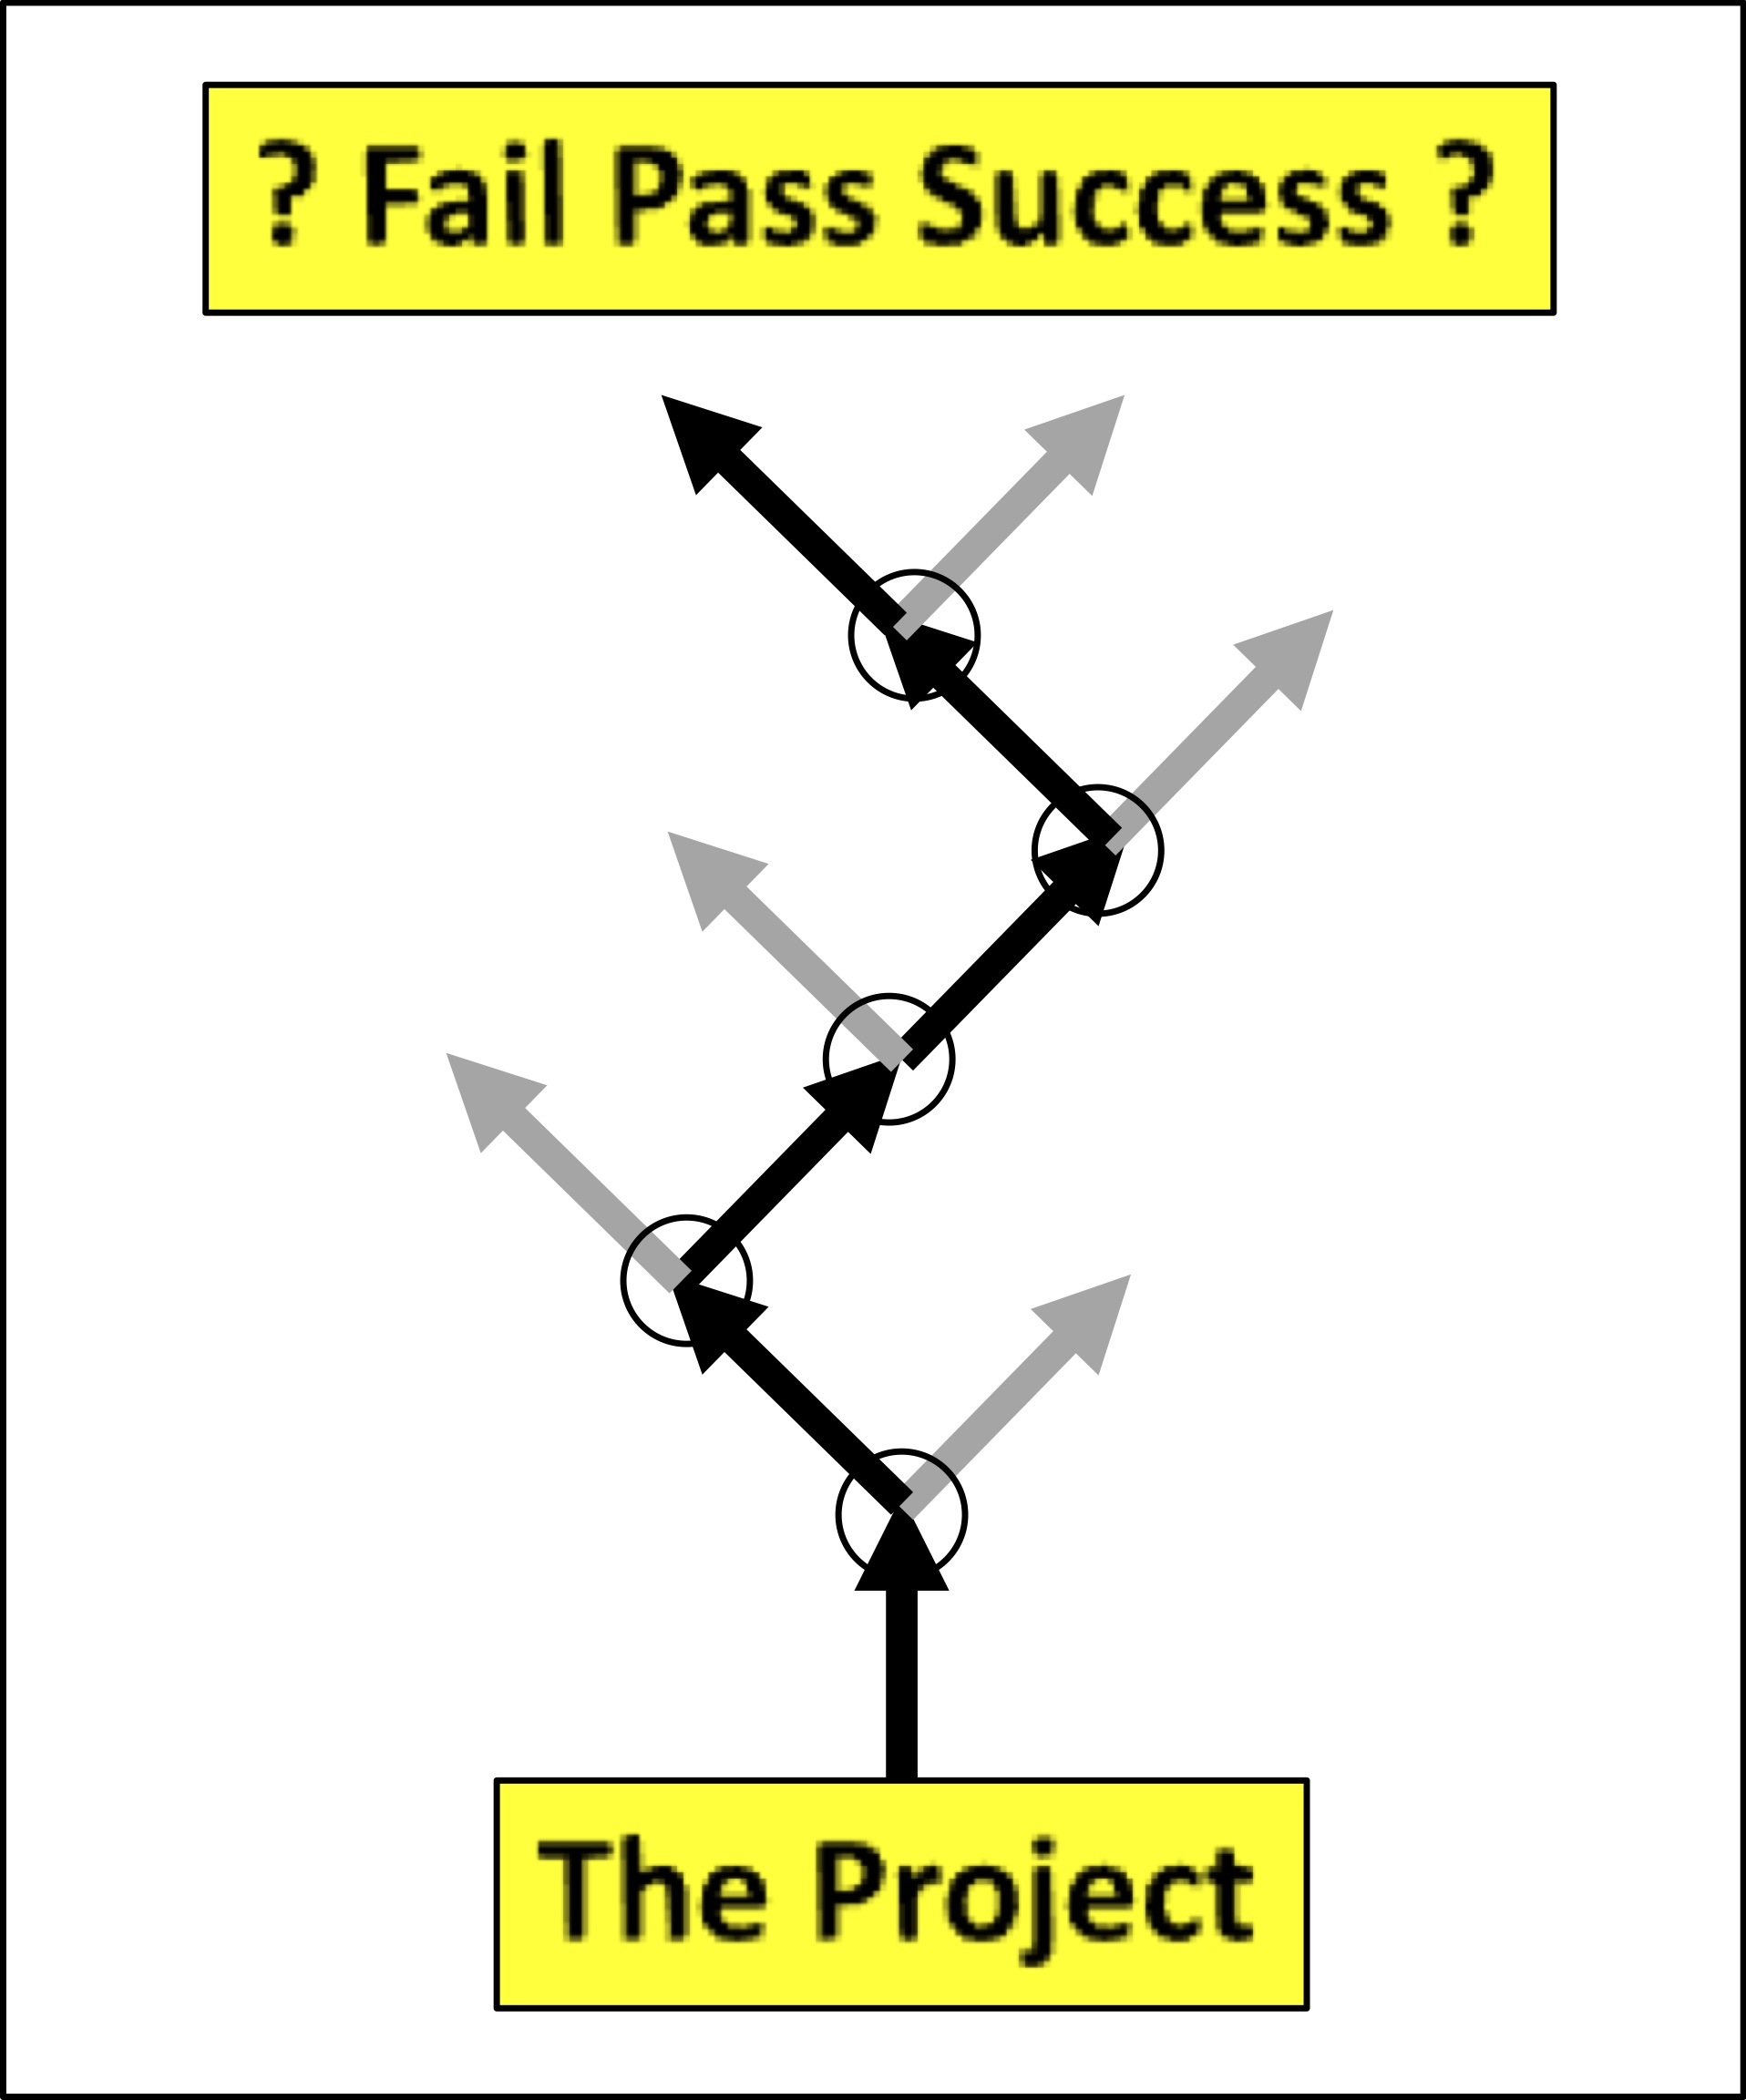 Project Prospects: Three rules for good judgment